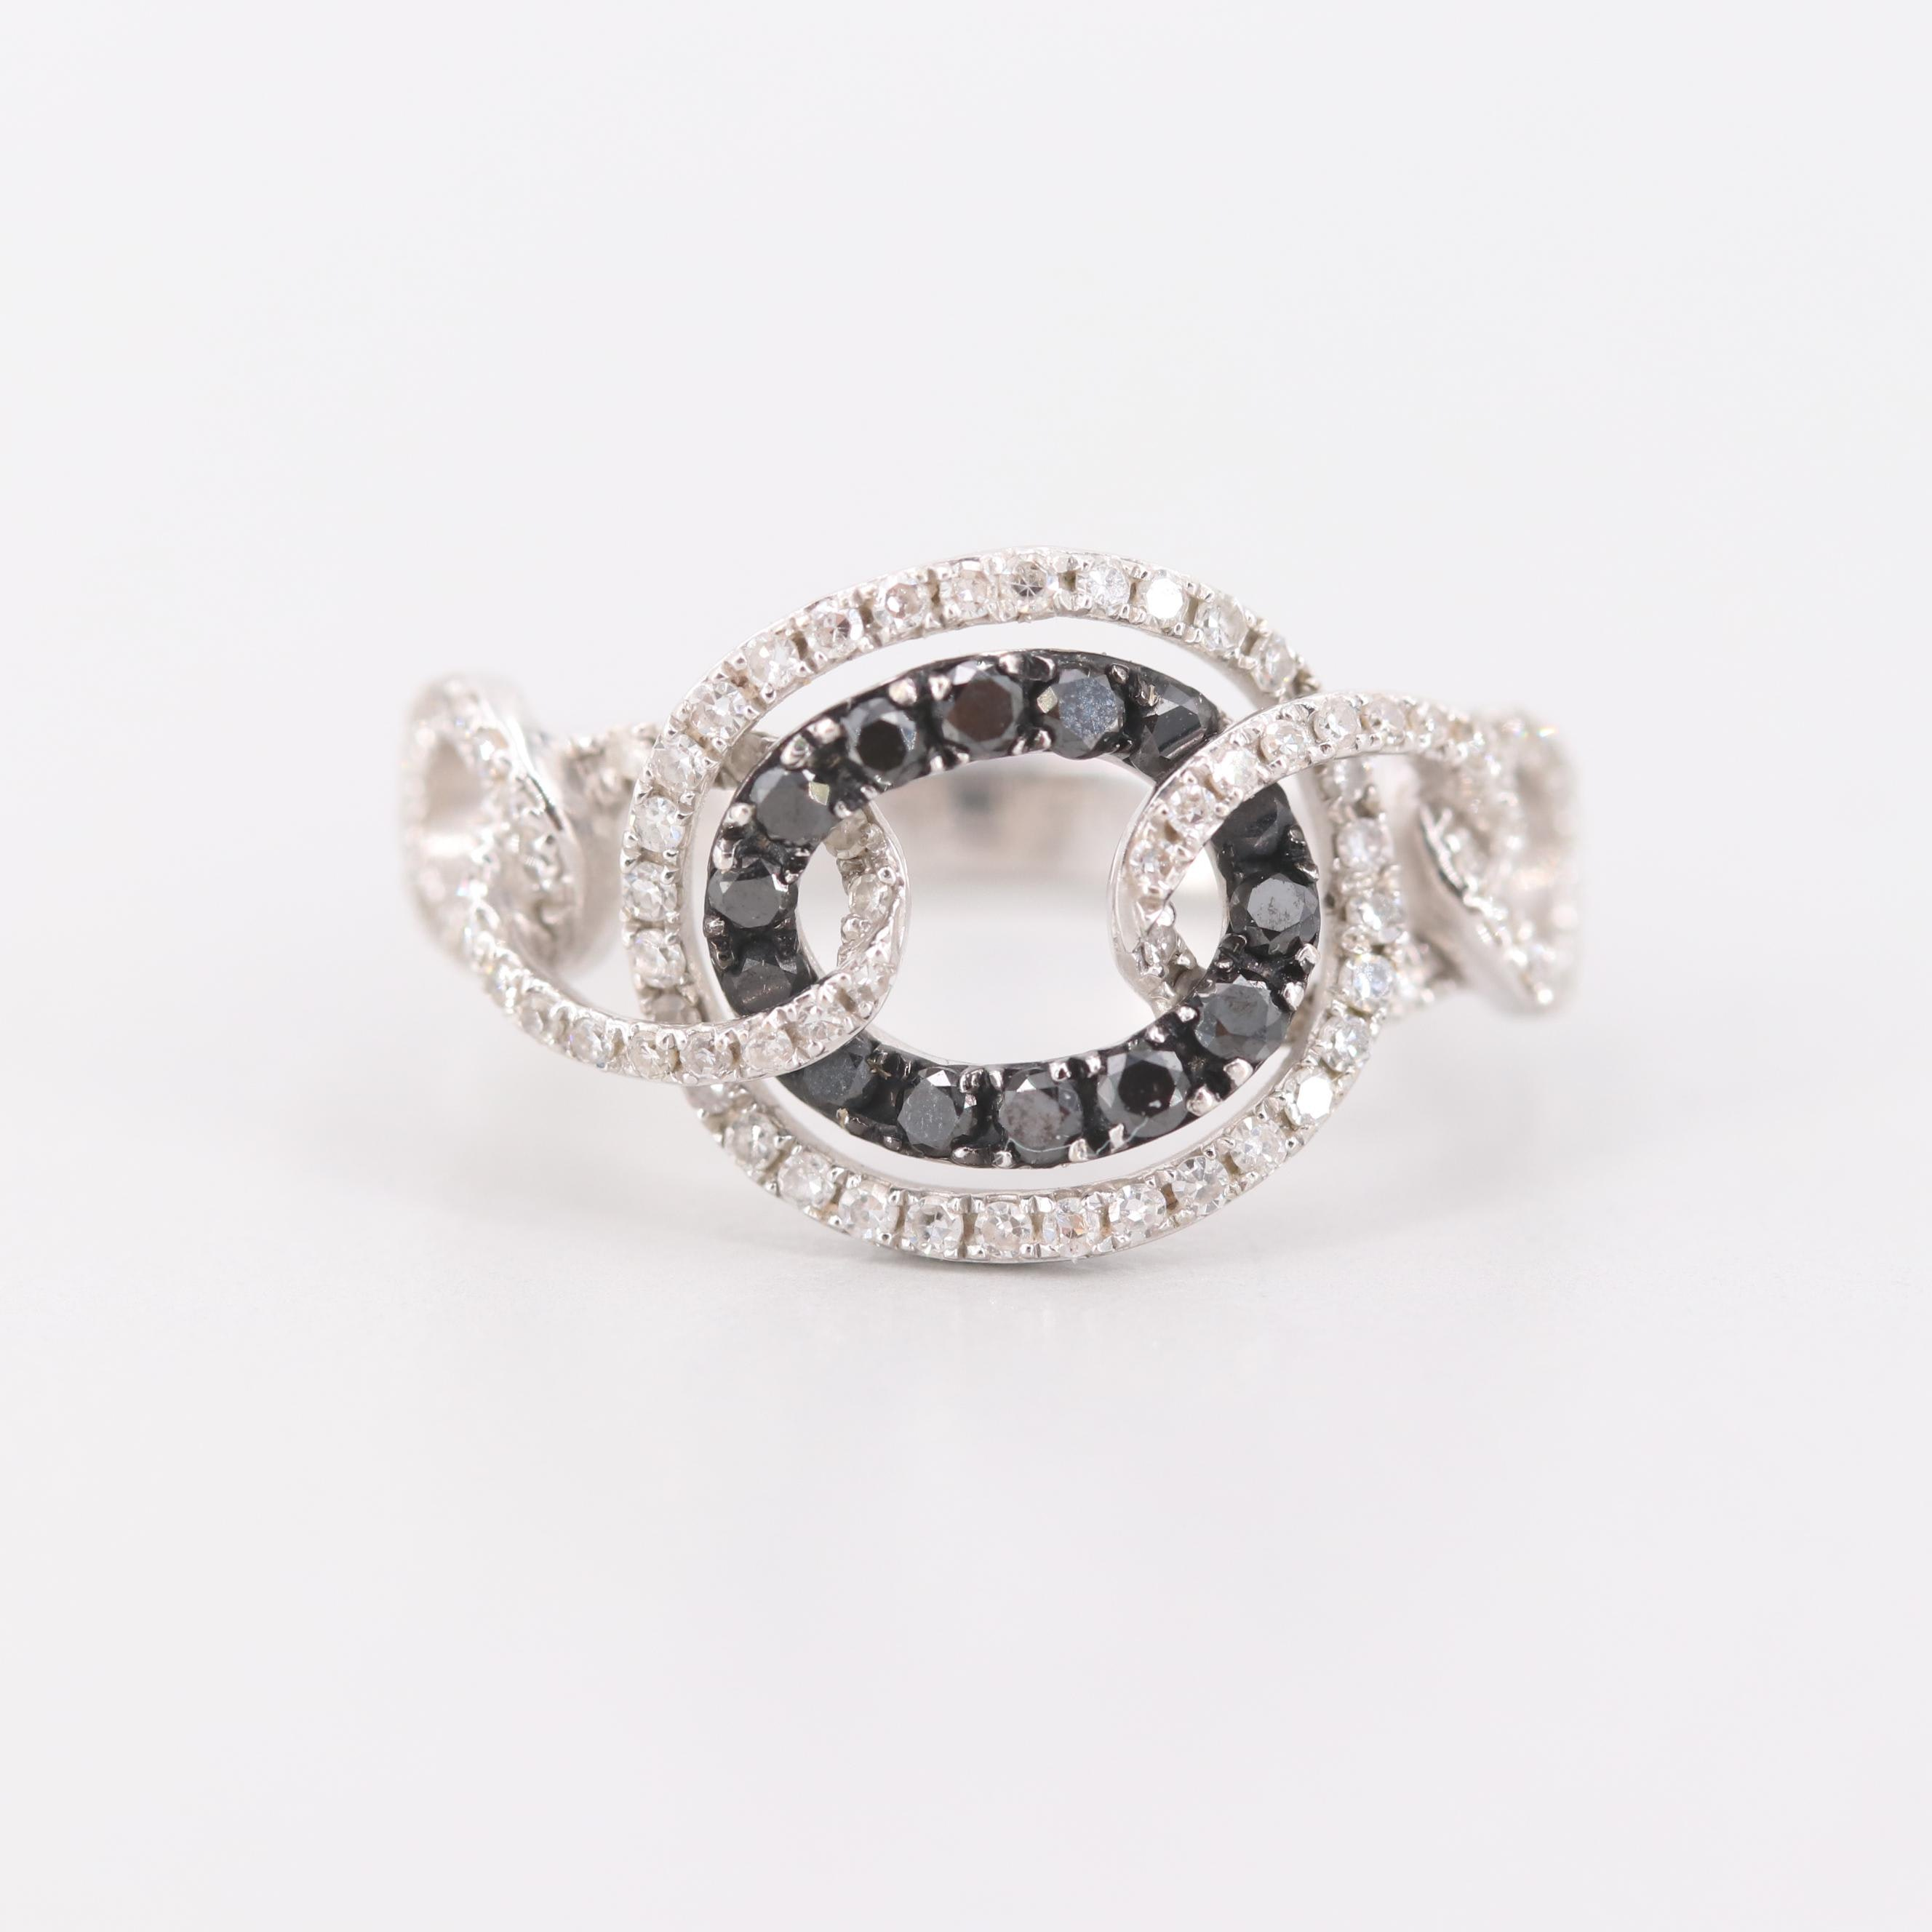 Sidney Berman & Company, Inc. 14K White Gold Diamond Interlocking Oval Ring